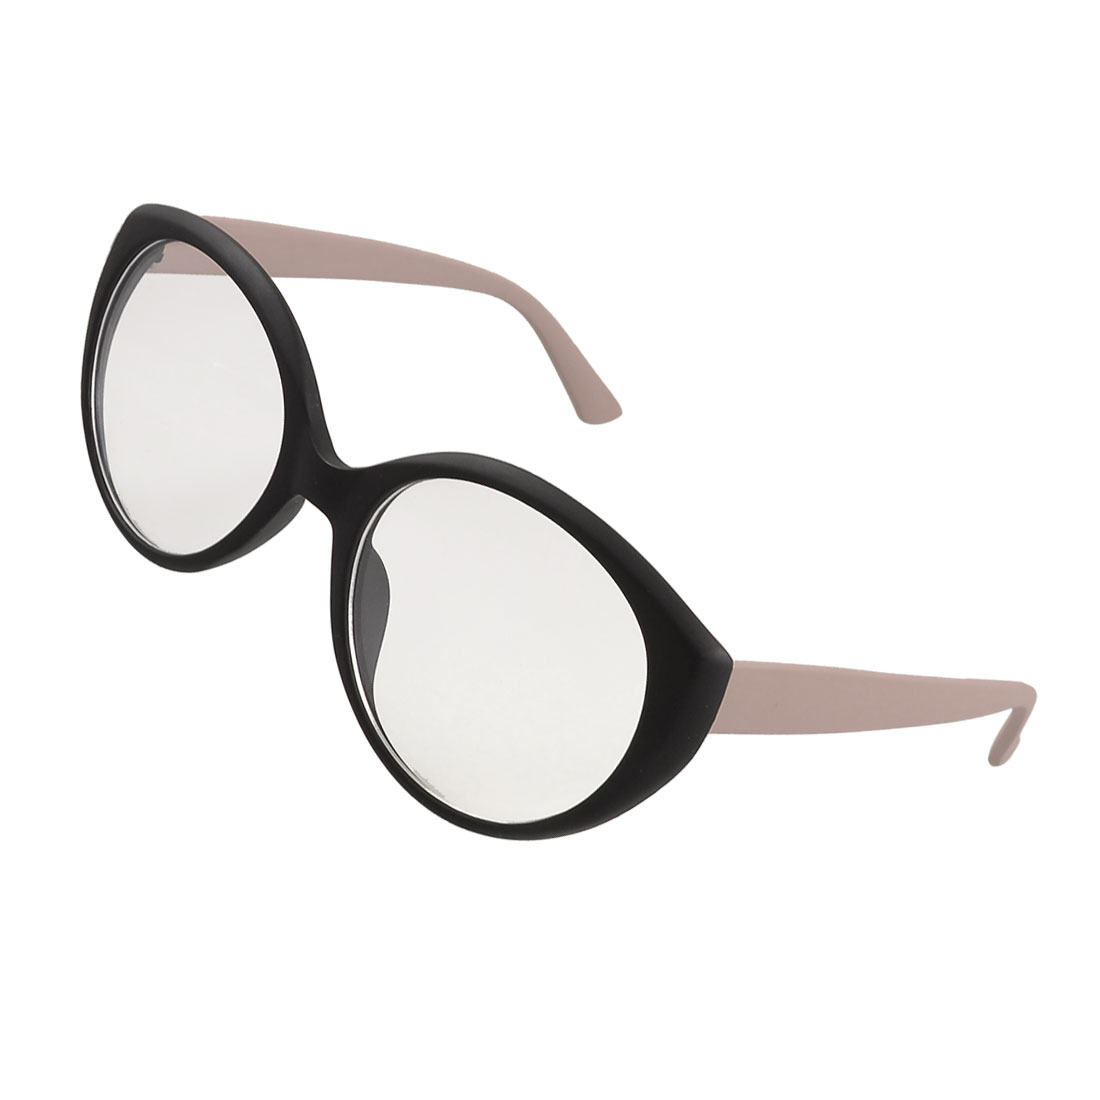 Round Plano Lens Pale Pink Black Plastic Temples Rimmed Spectacles for Women